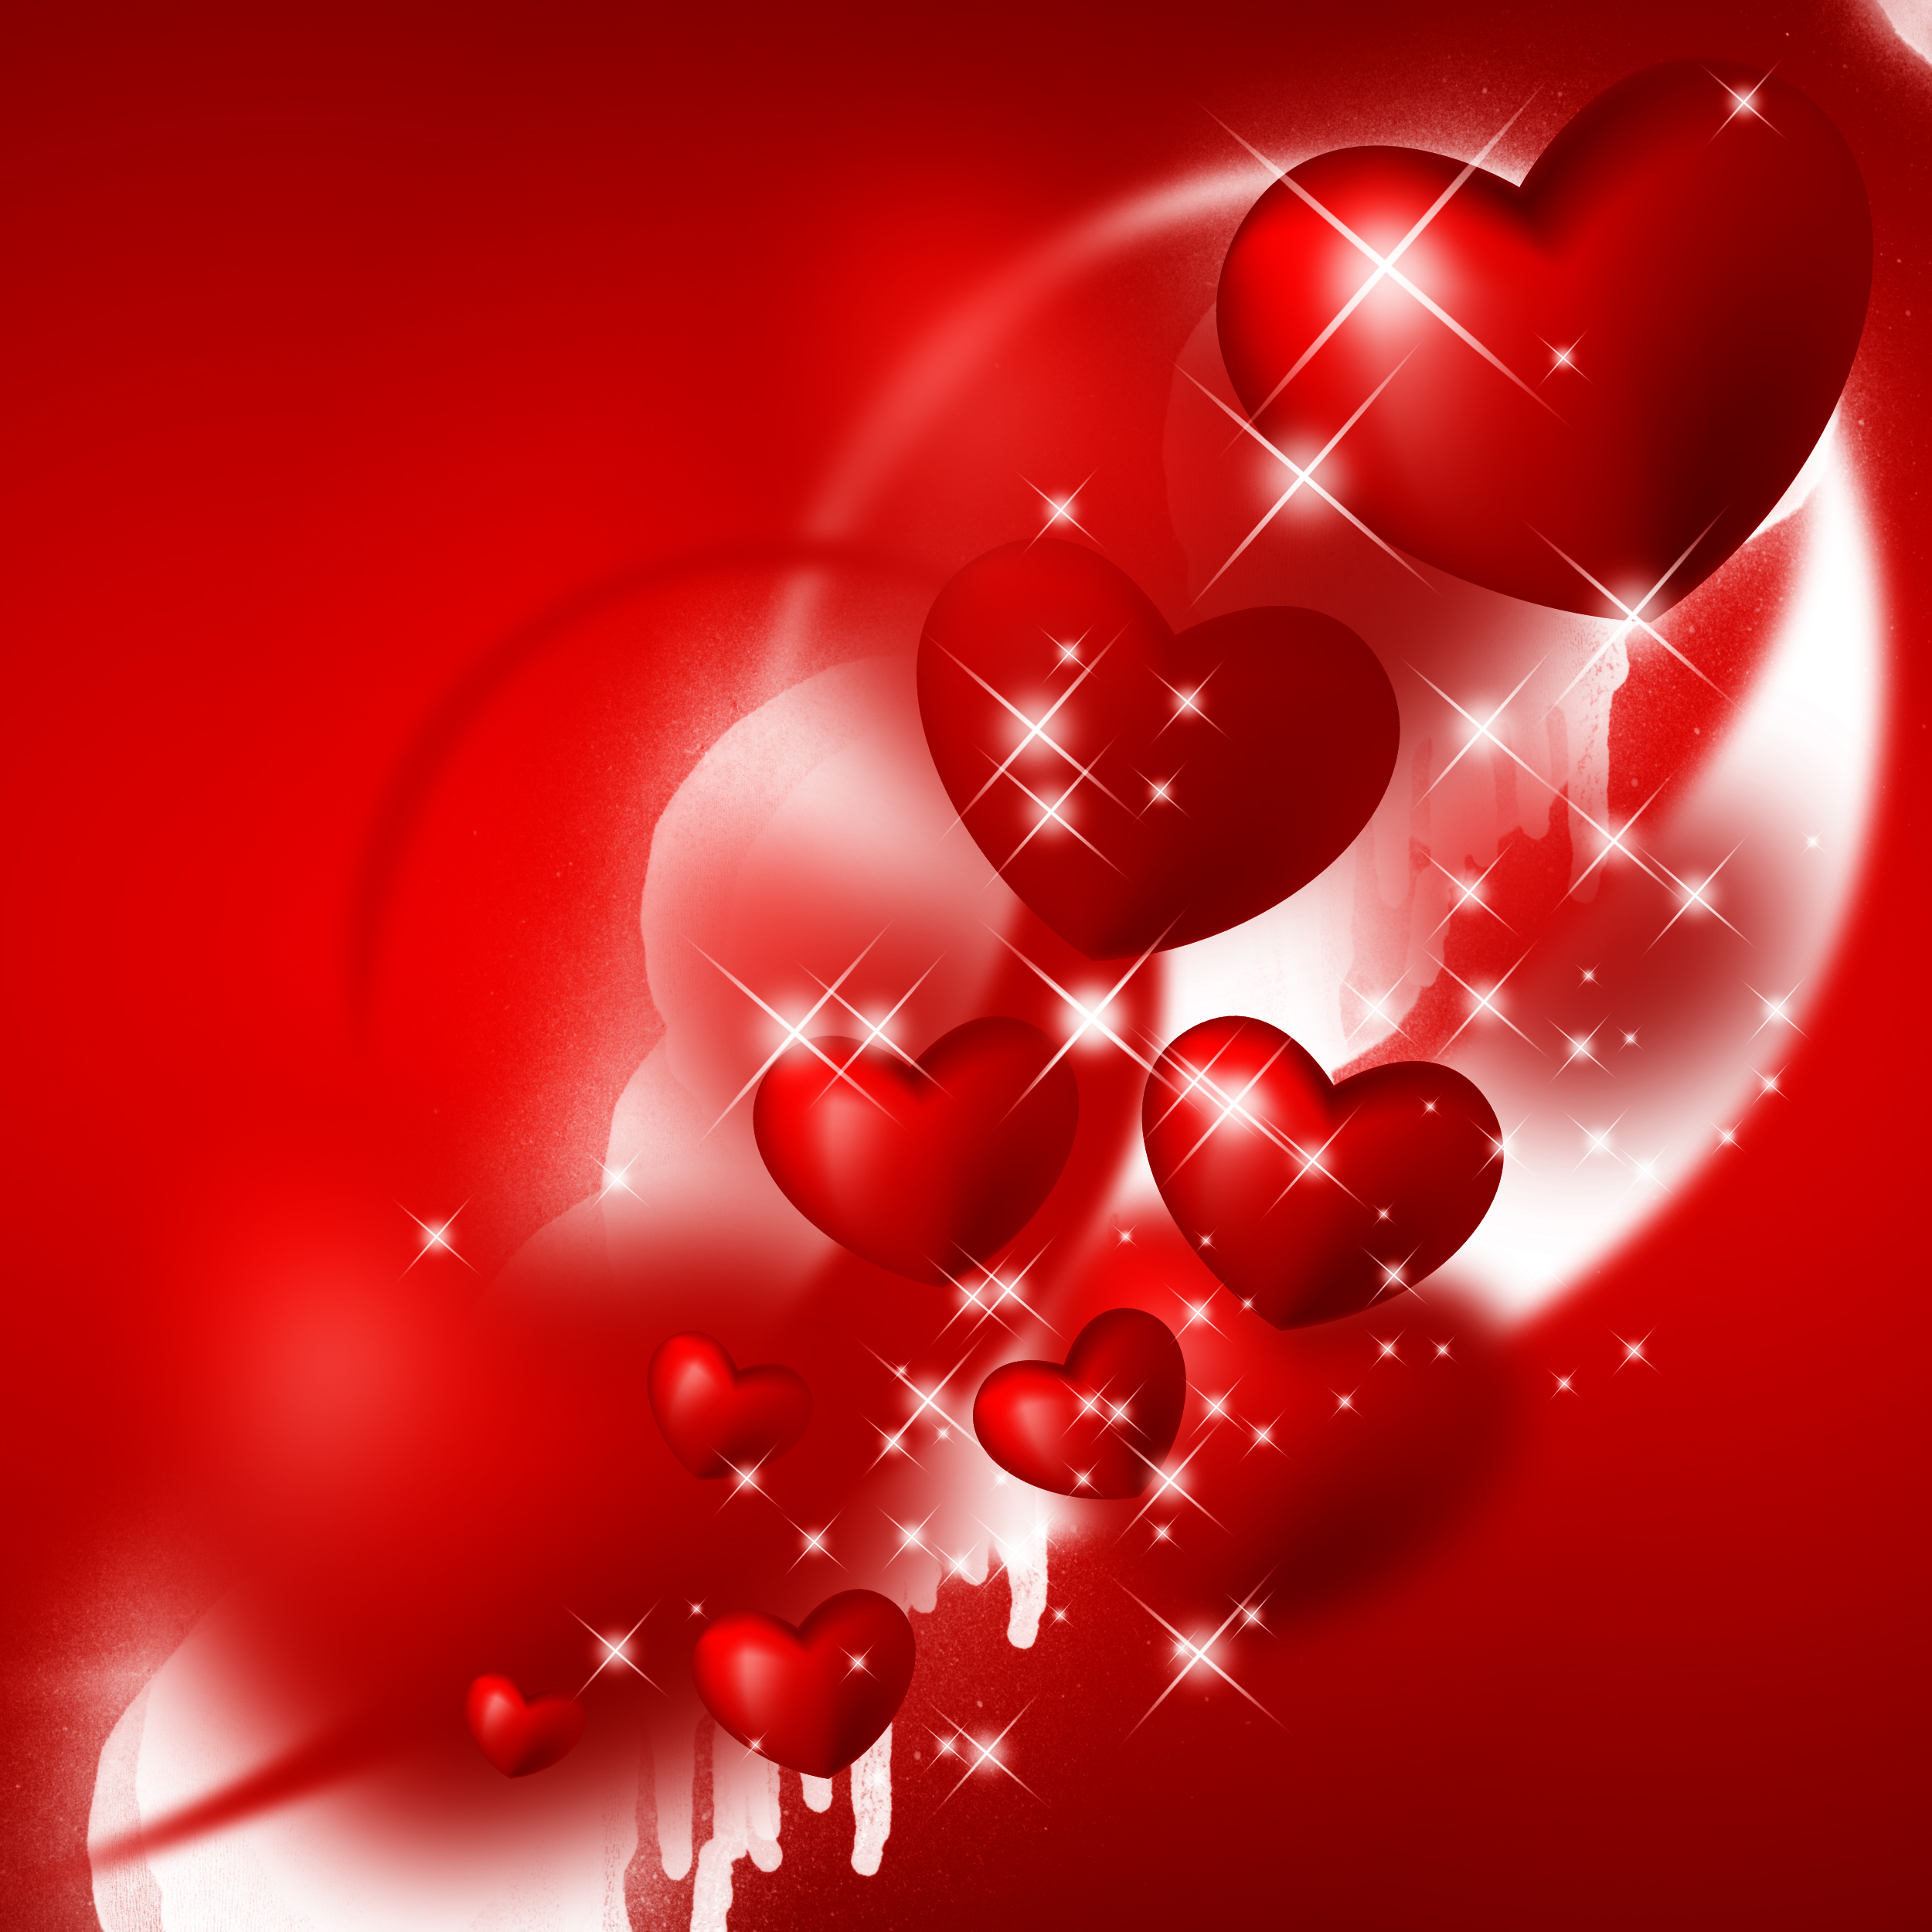 obxJhw valentines background images free